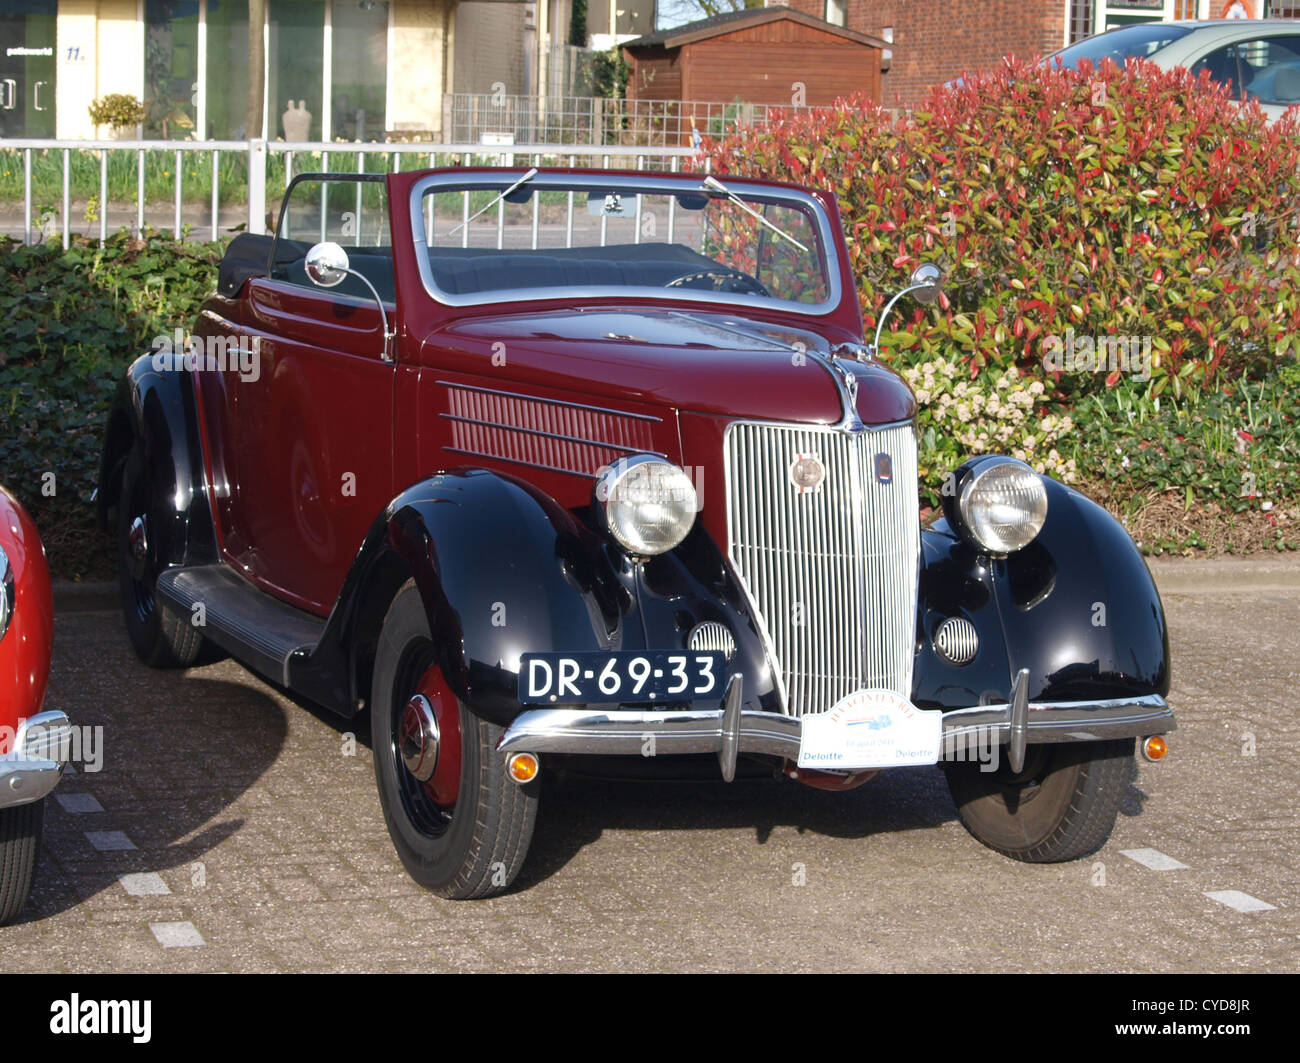 Old Classic Ford V8 Truck Stock Photos & Old Classic Ford V8 Truck ...